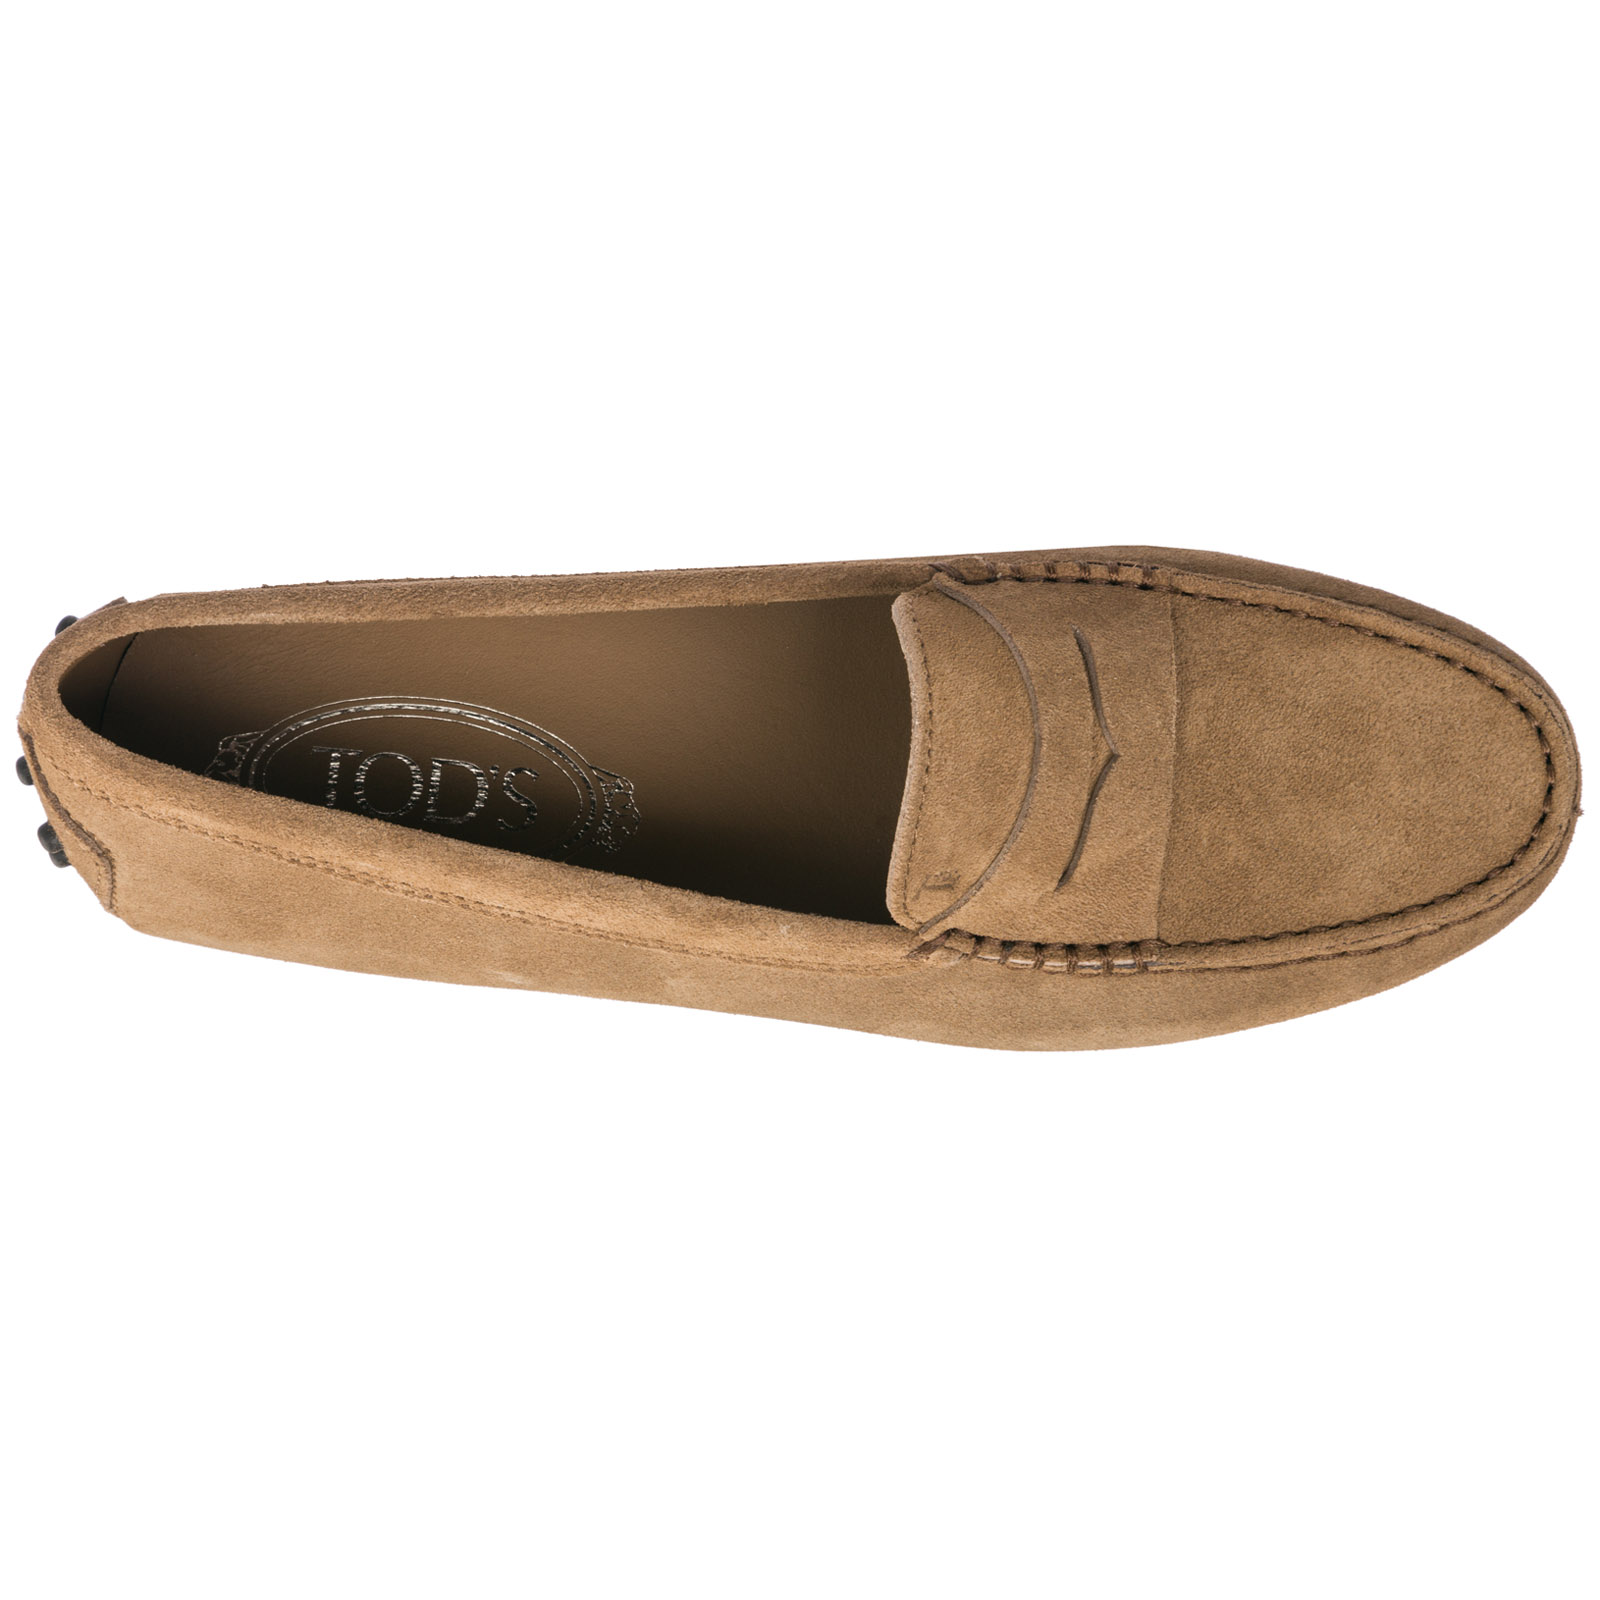 Women's suede loafers moccasins gommino